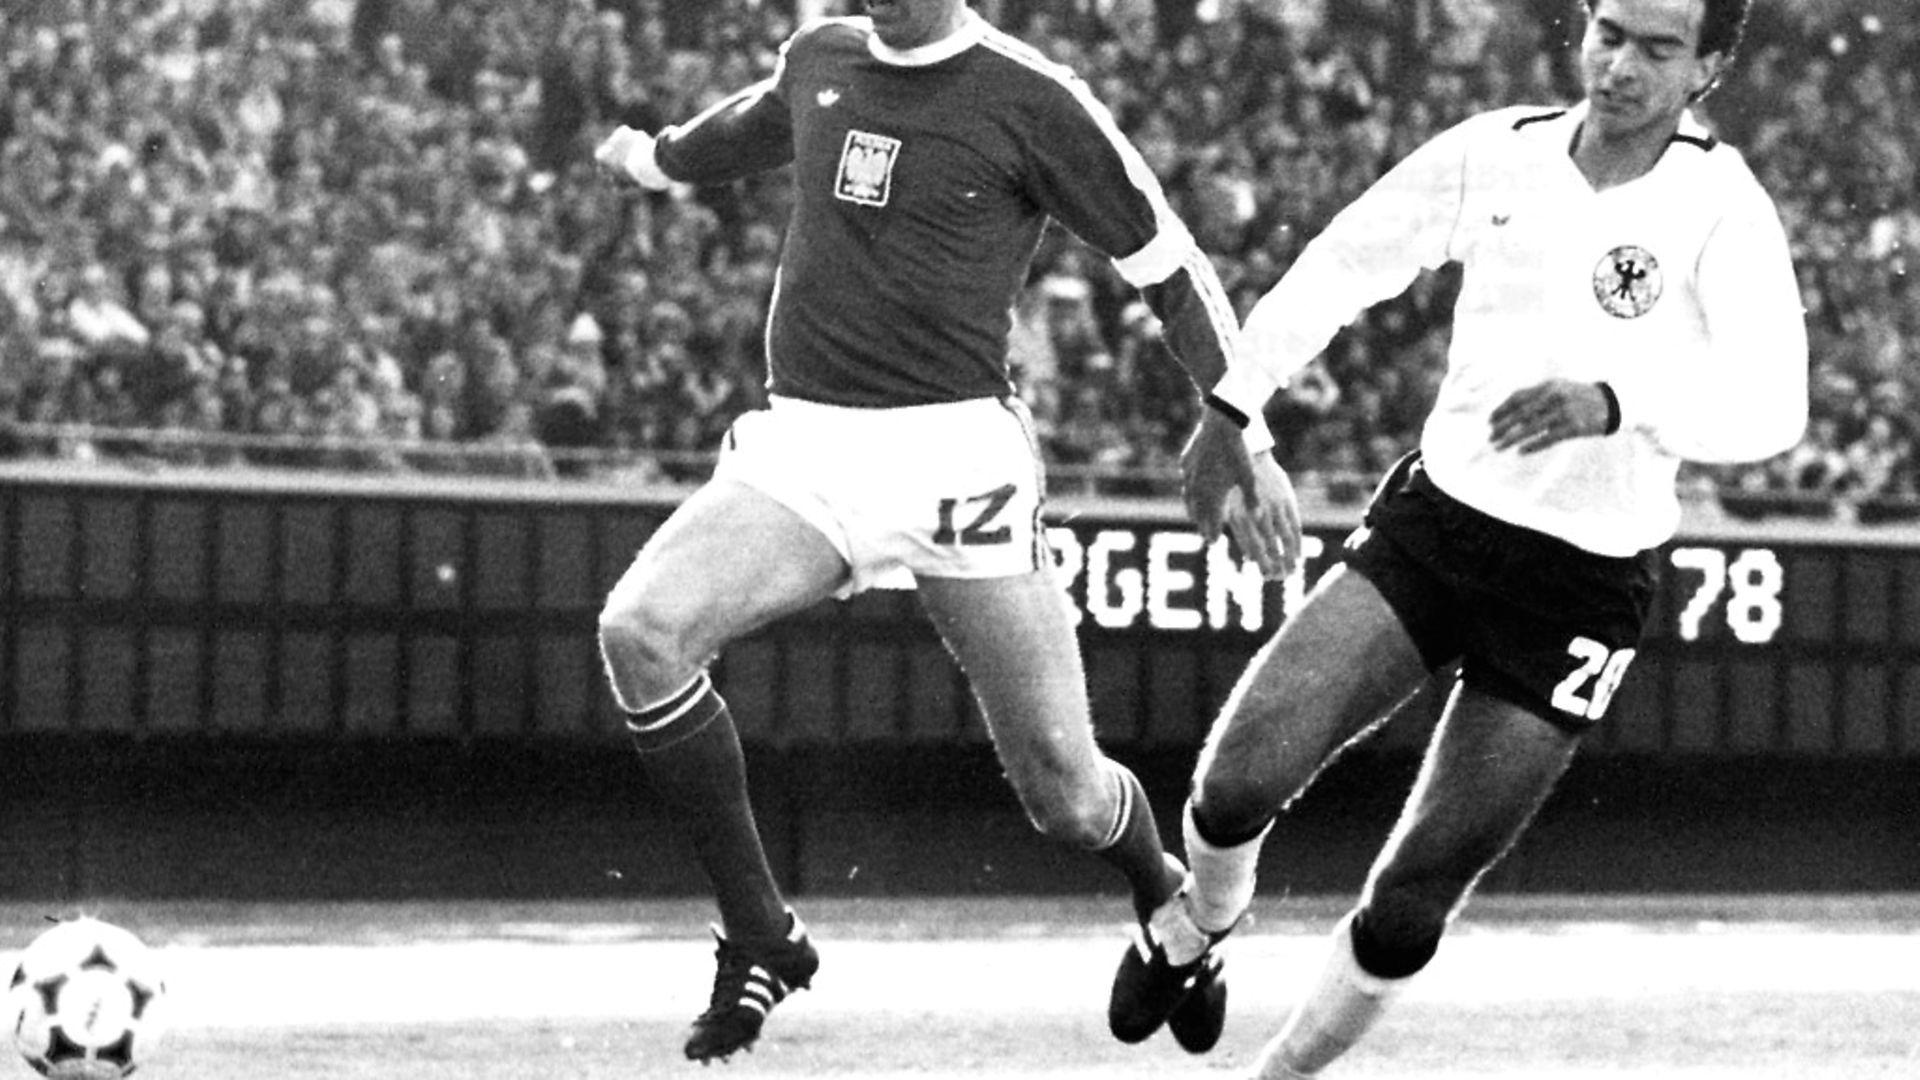 Poland's Kazimierz Deyna, left, skips past Germany's Hansi Mueller in a 0-0 draw at the 1978 FIFA world cup in Argentina. Picture: Getty Images - Credit: ullstein bild via Getty Images